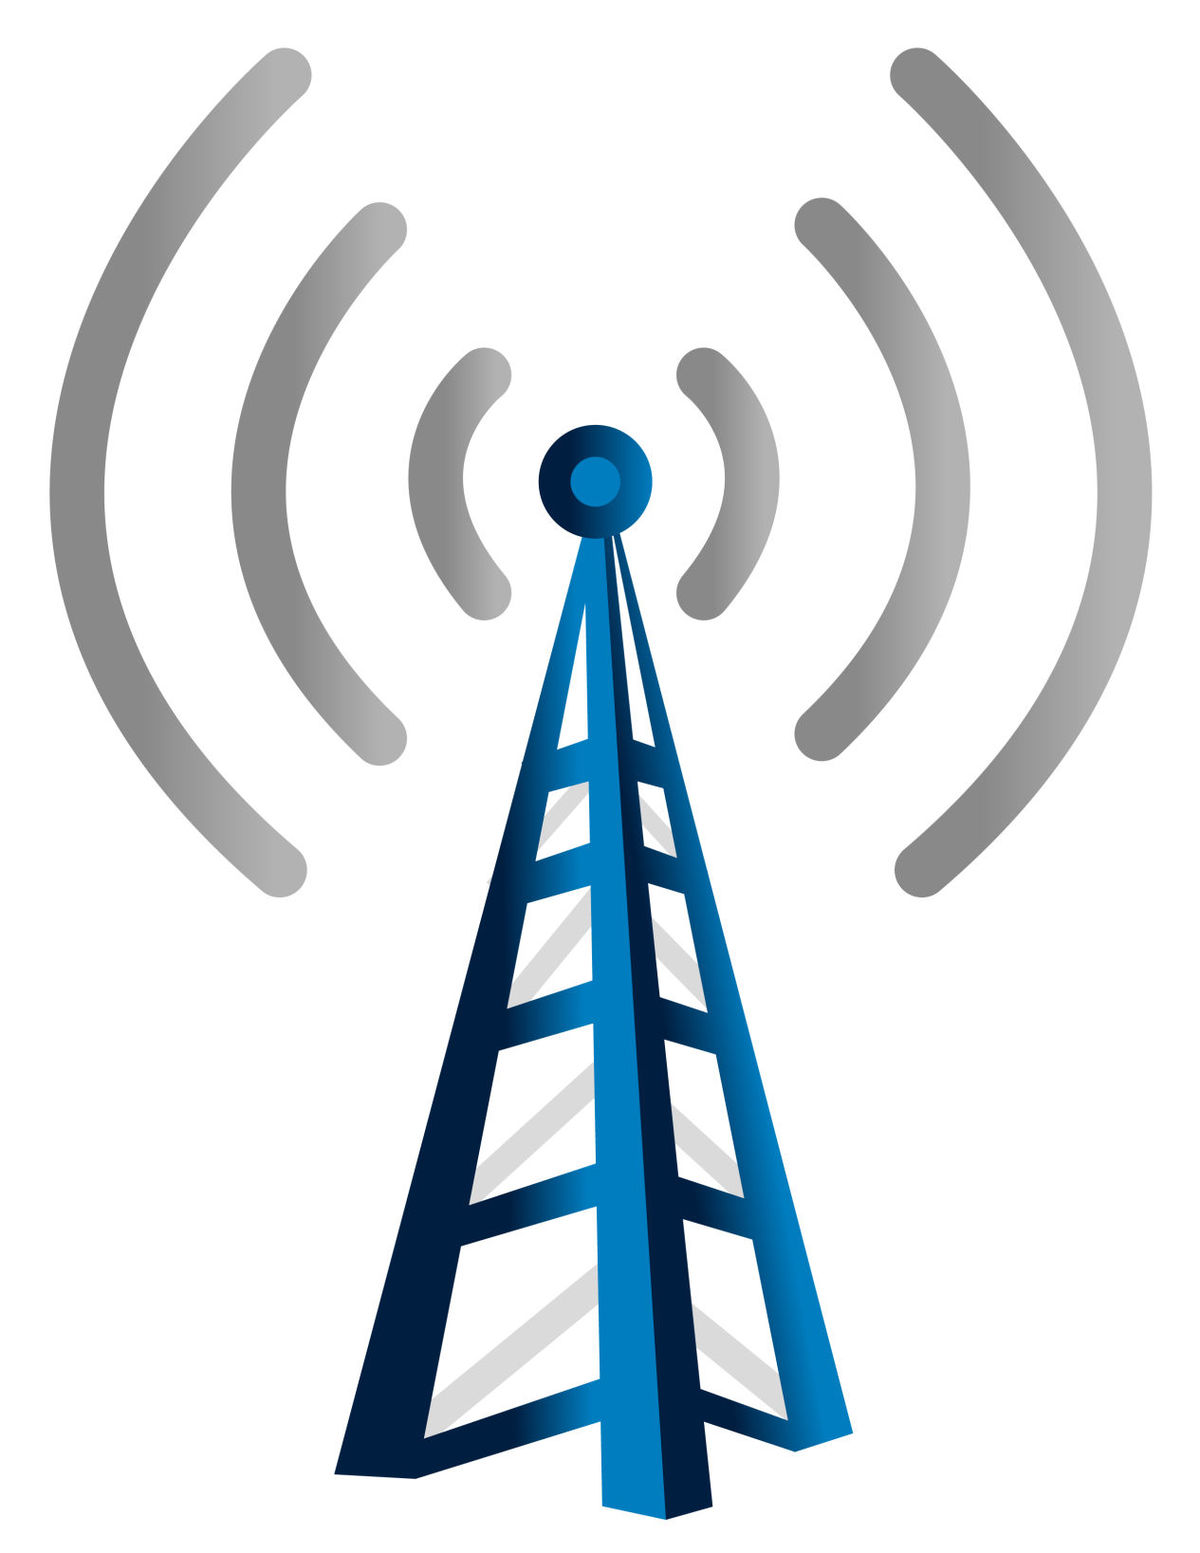 Cell tower graphic